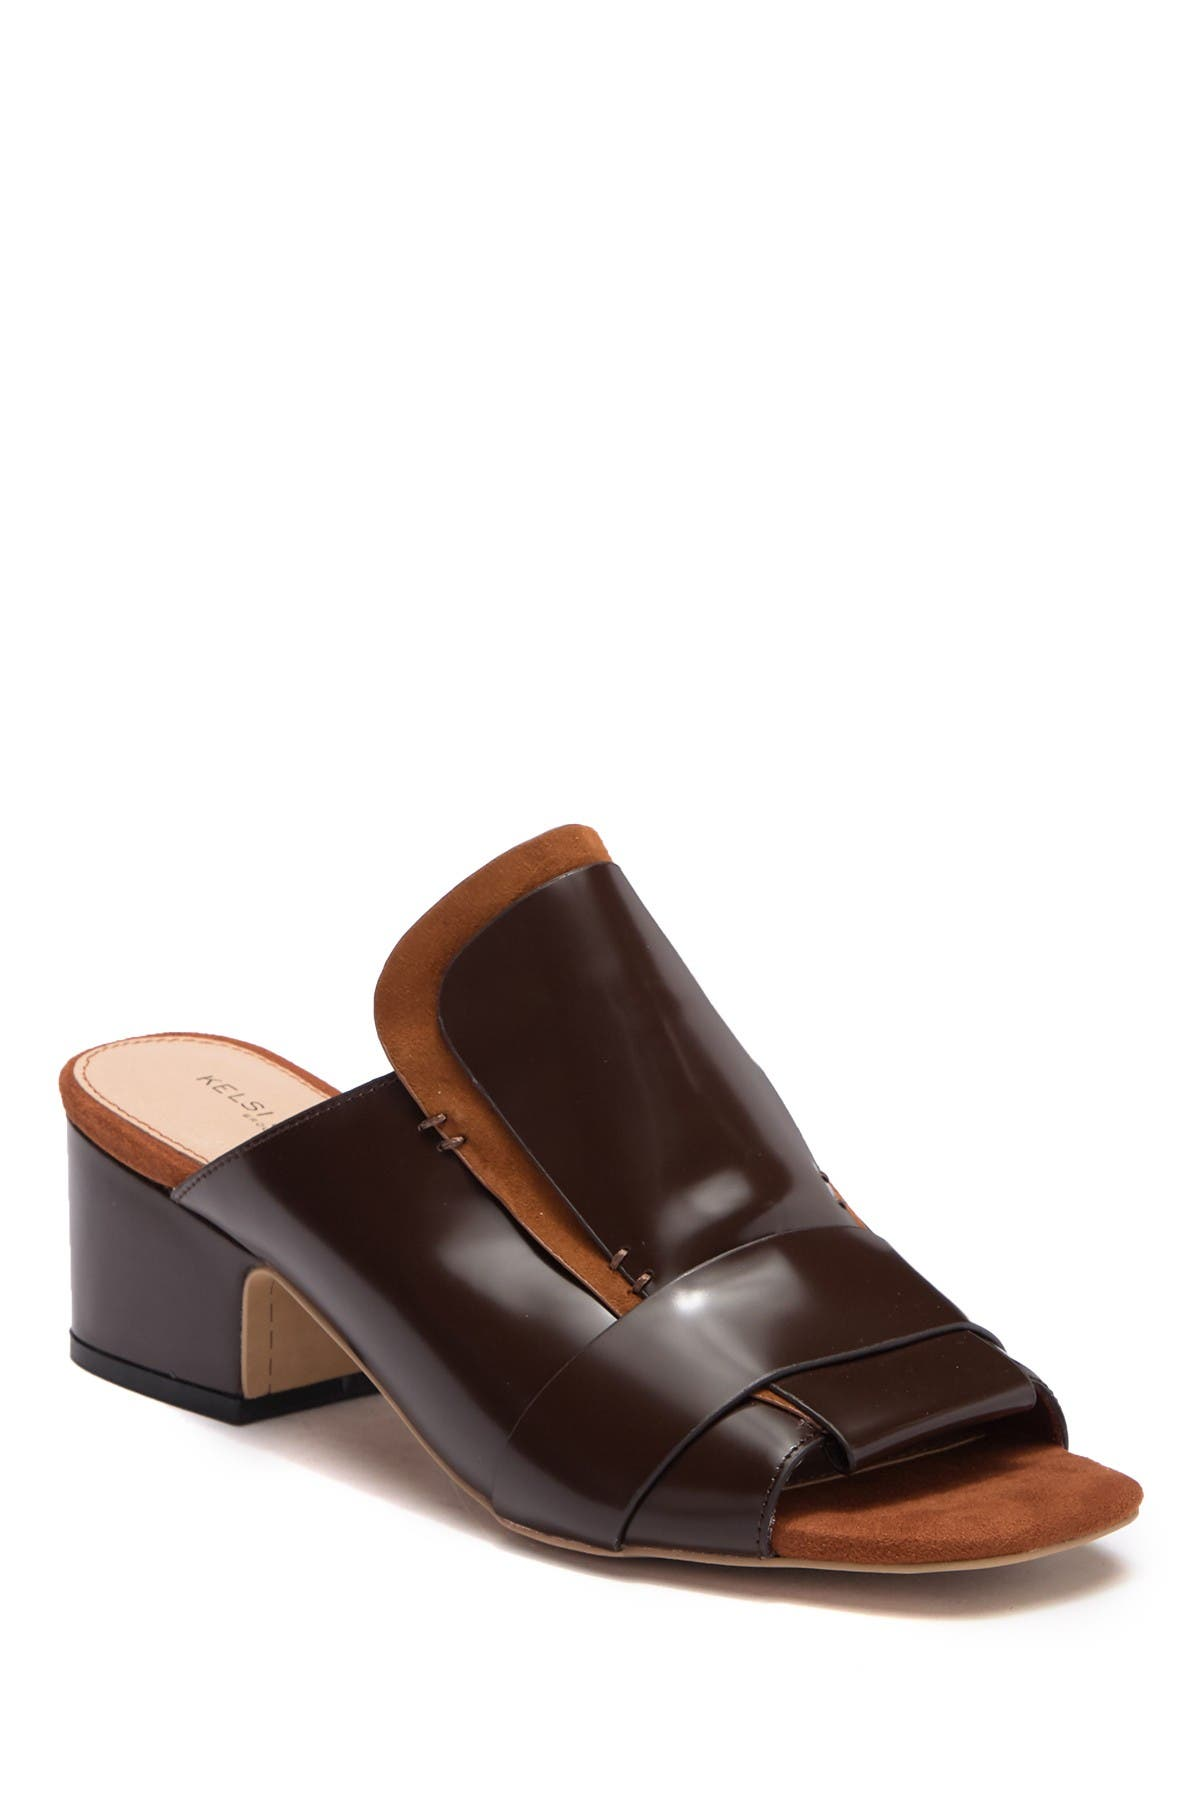 Image of Kelsi Dagger Brooklyn Sadie Leather Mule Sandal